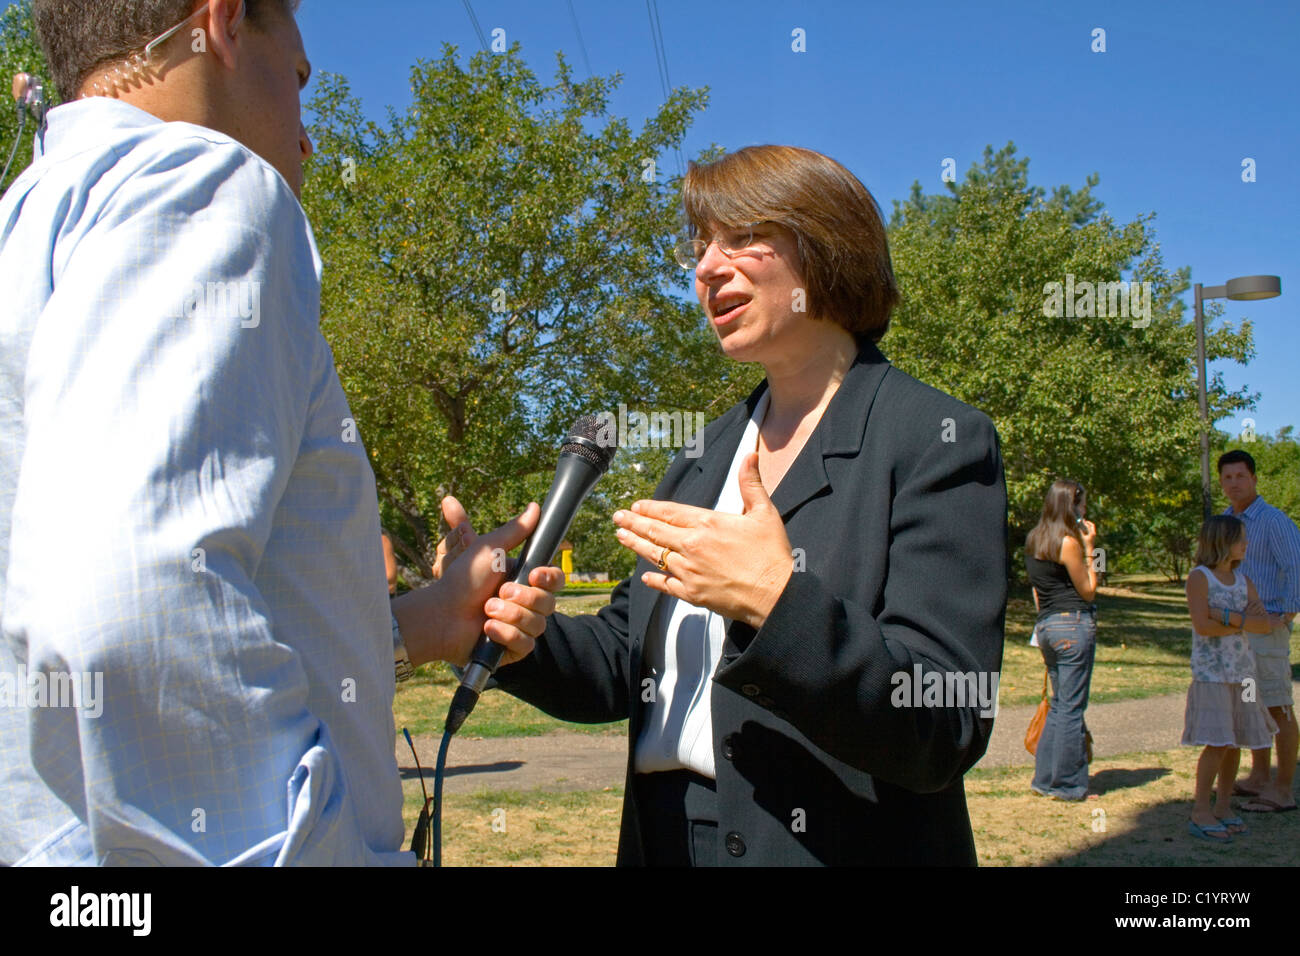 Senator Amy Klobuchar speaking to press day after I-35W bridge collapse. Father Hennepin Bluffs Pk Minneapolis Minnesota - Stock Image